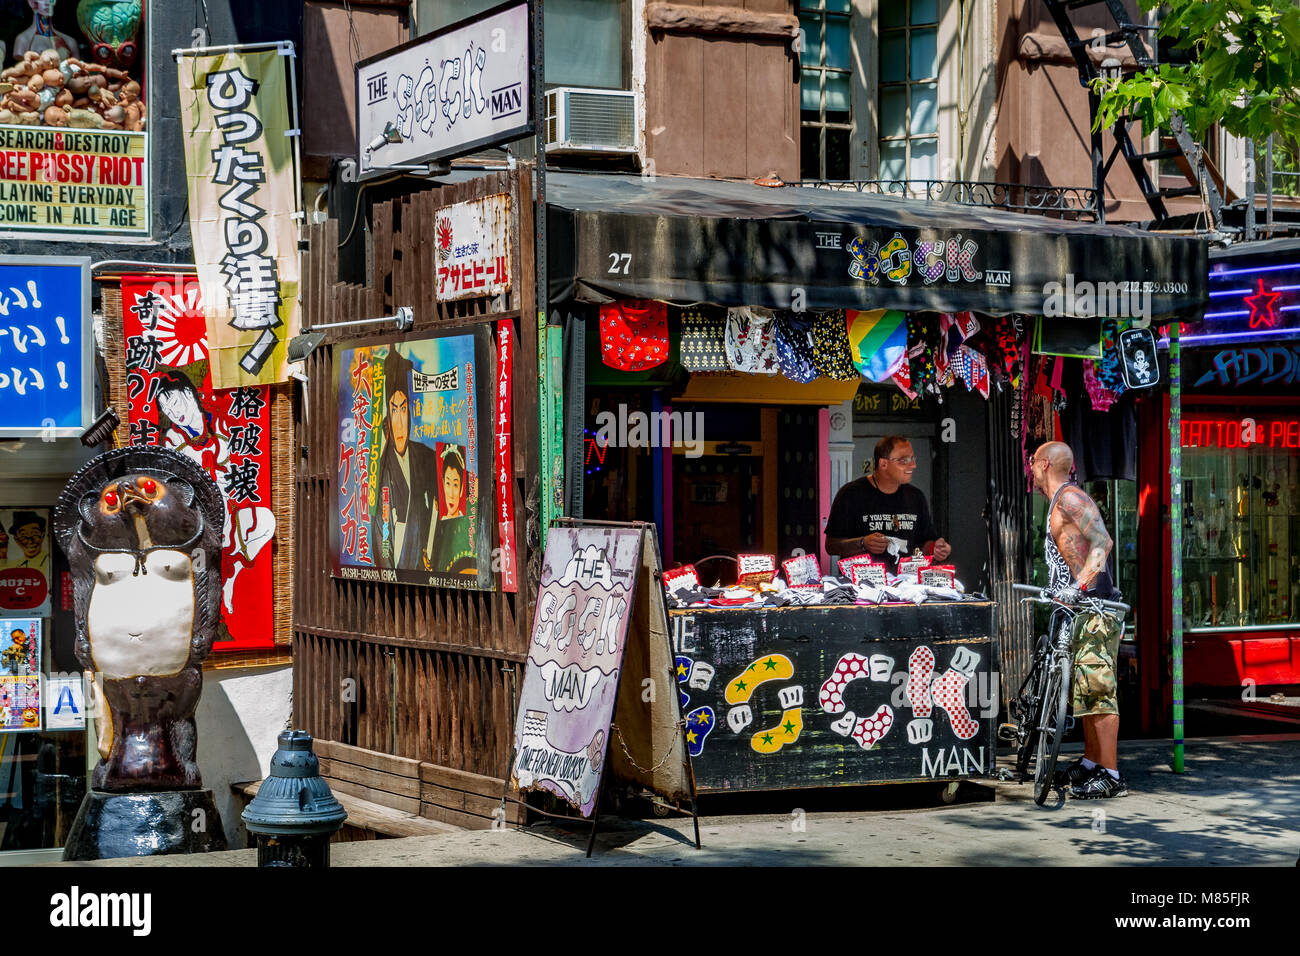 Man selling socks at a sock store in St Marks Place In The East Village ,Manhattan ,New York City - Stock Image